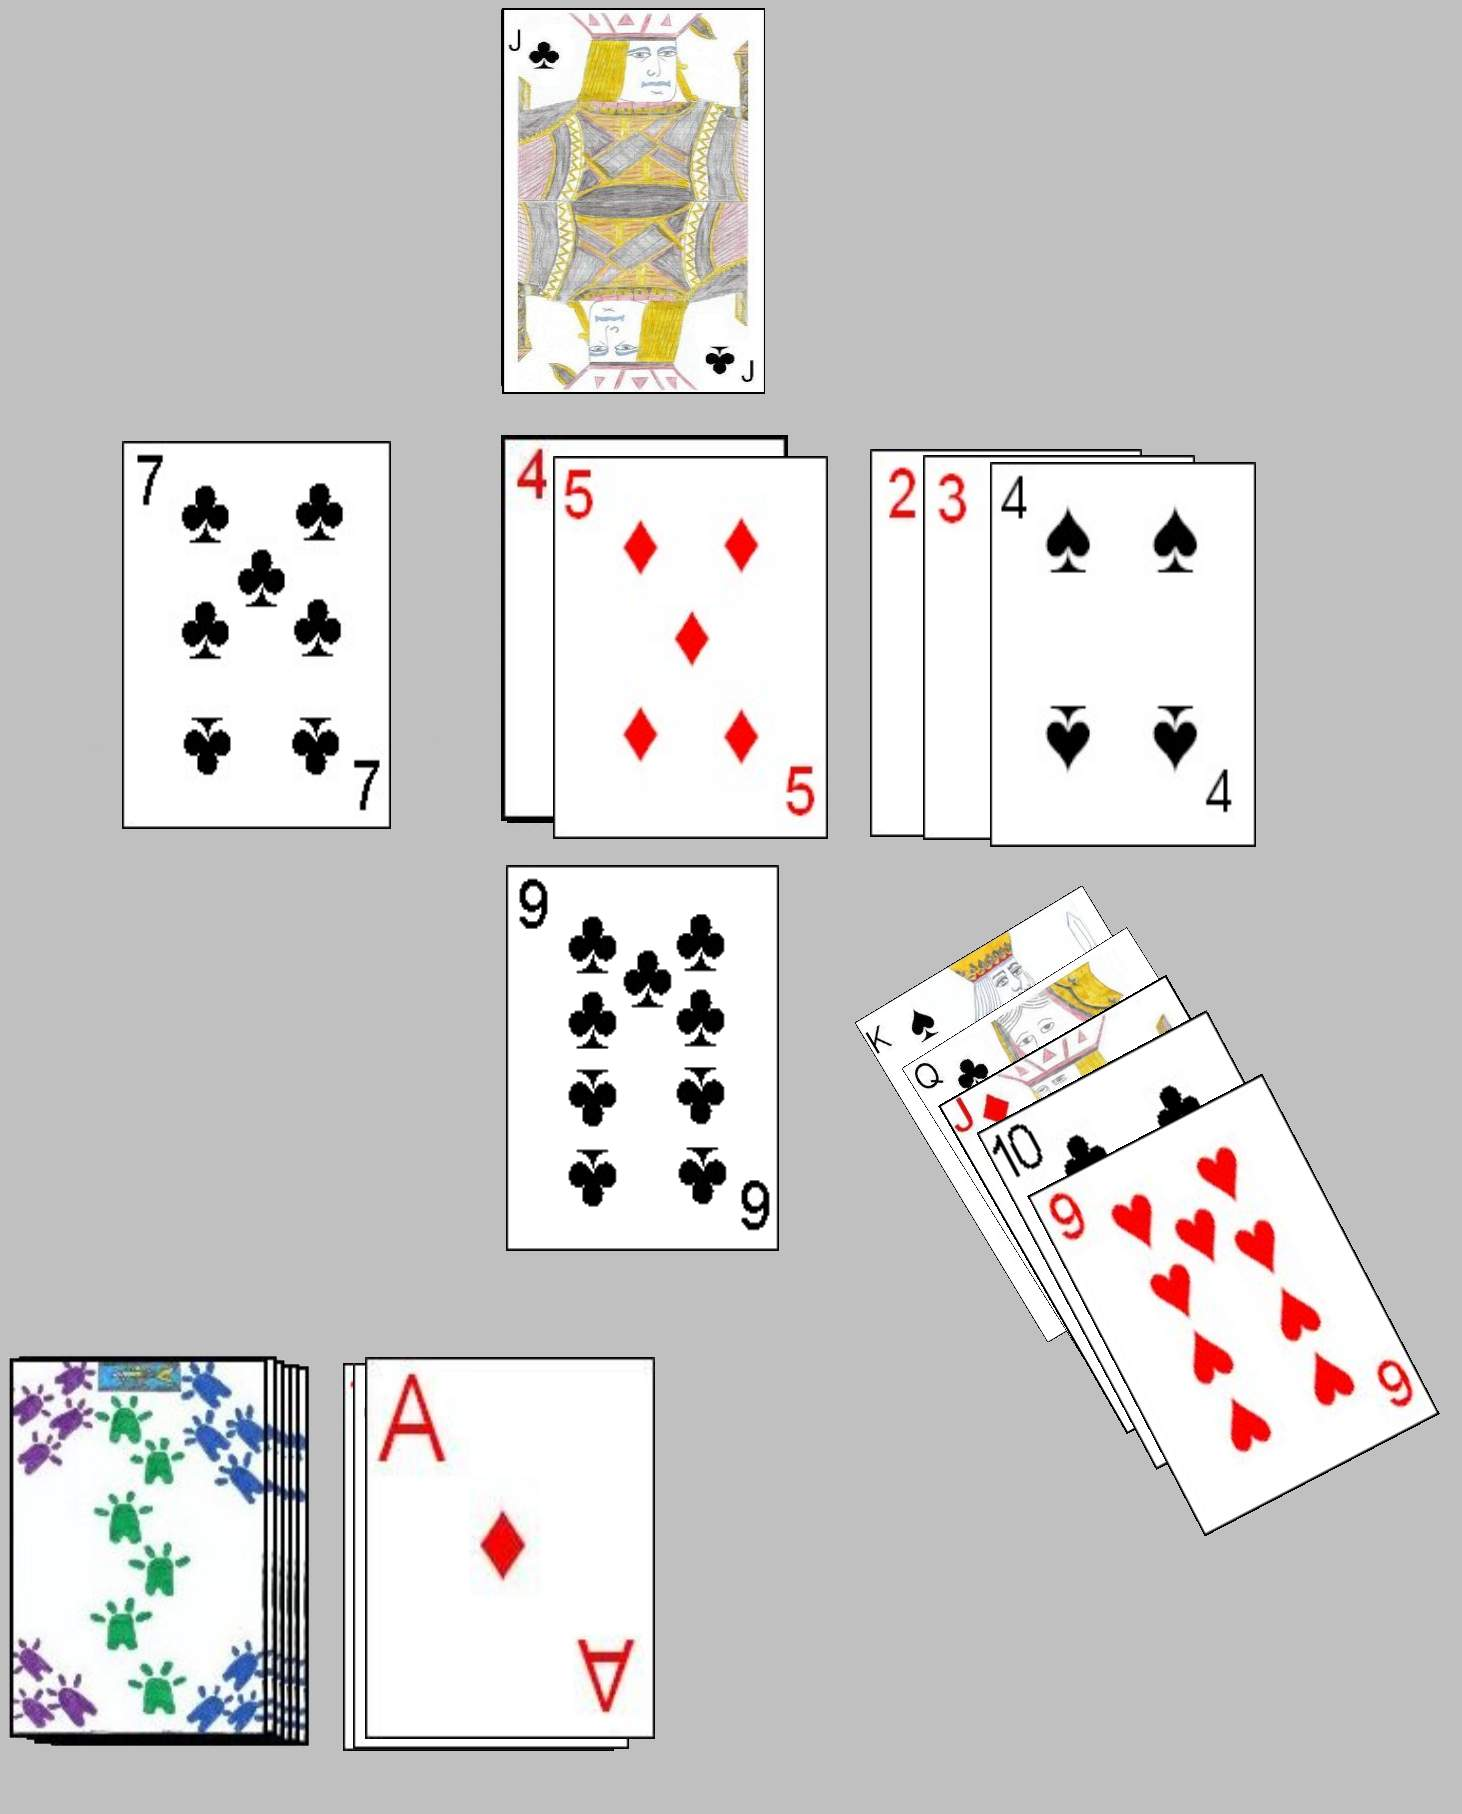 Kings Corner Solitaire possible game in progress